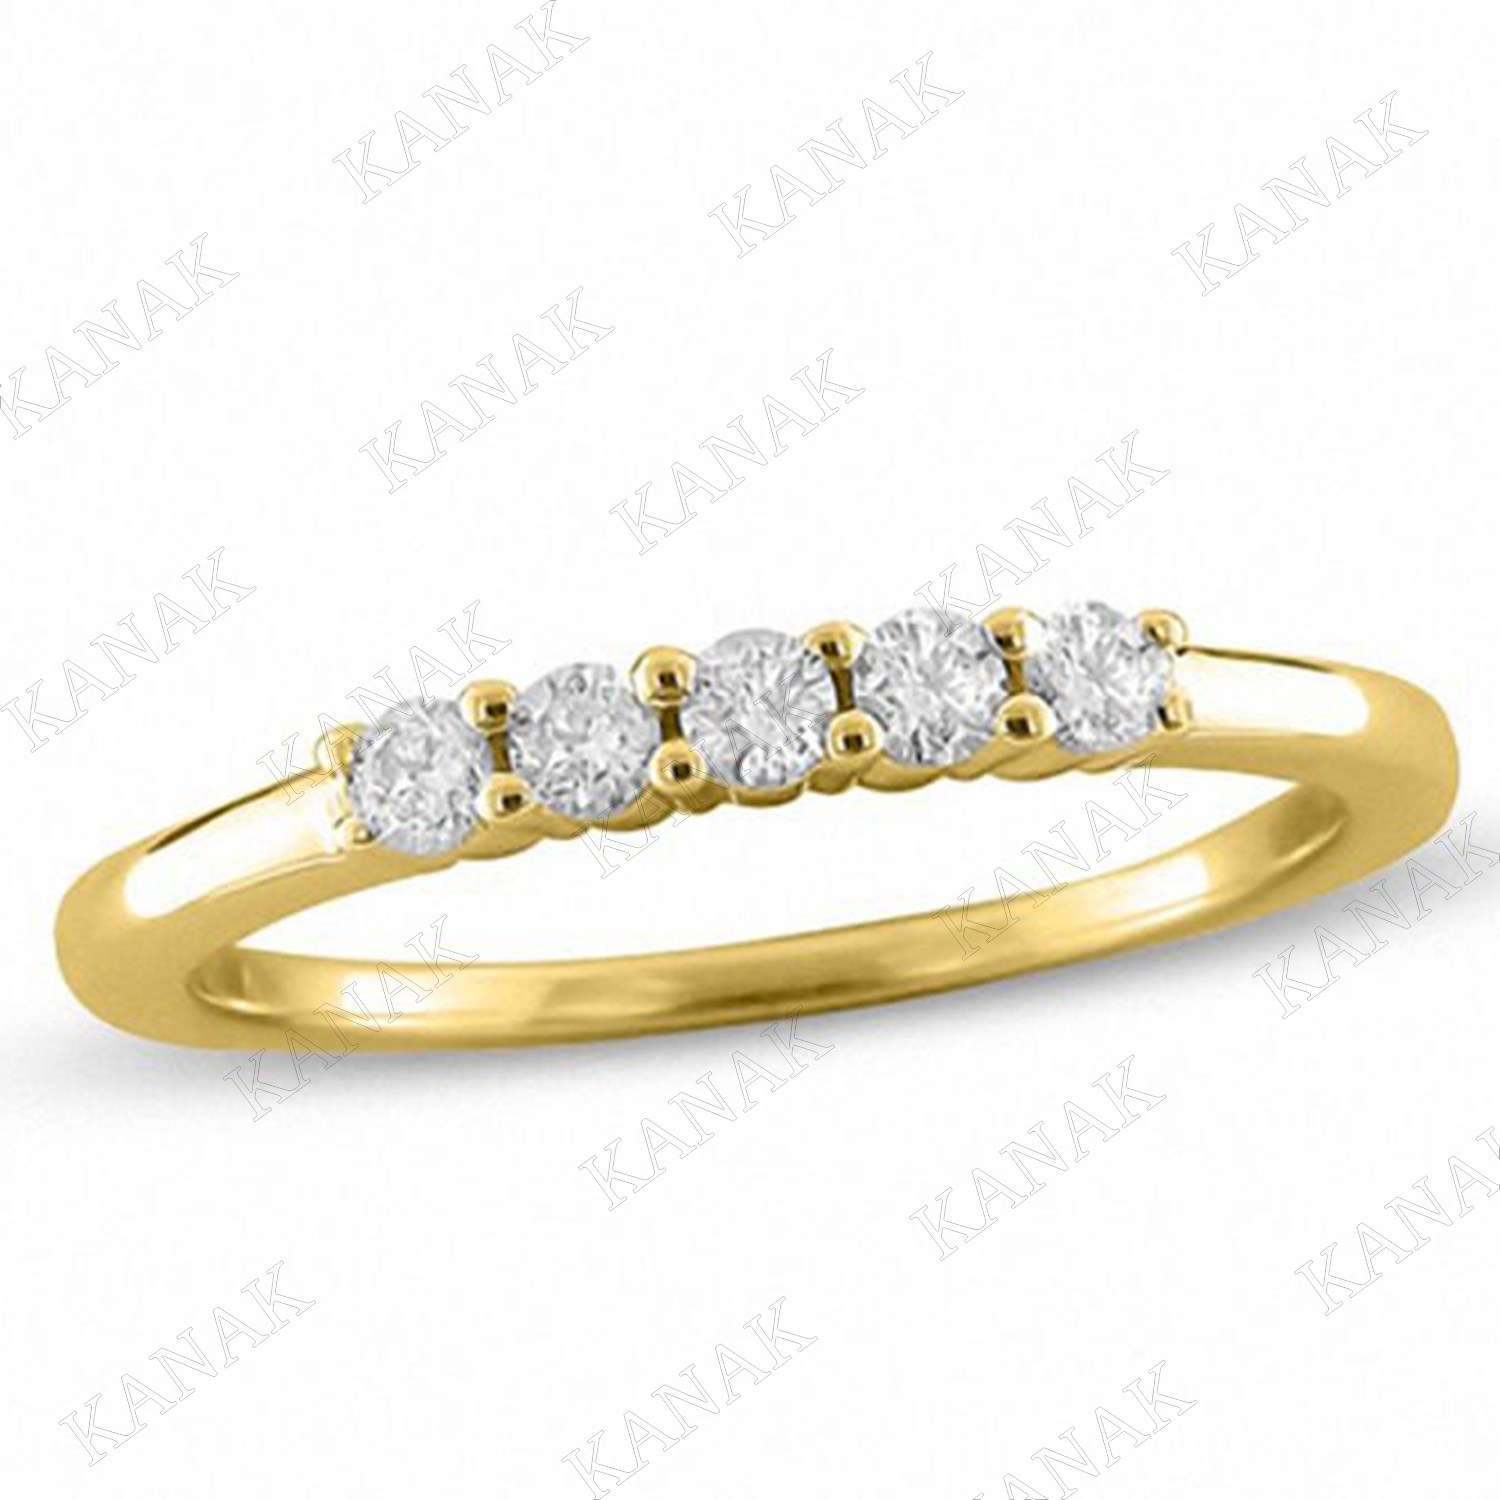 Details About 14K Yellow Gold 1/4 Ct Round Diamond Five Stone Wedding Band  Anniversary Ring With Regard To Newest Diamond Five Stone Anniversary Bands In Gold (View 16 of 25)